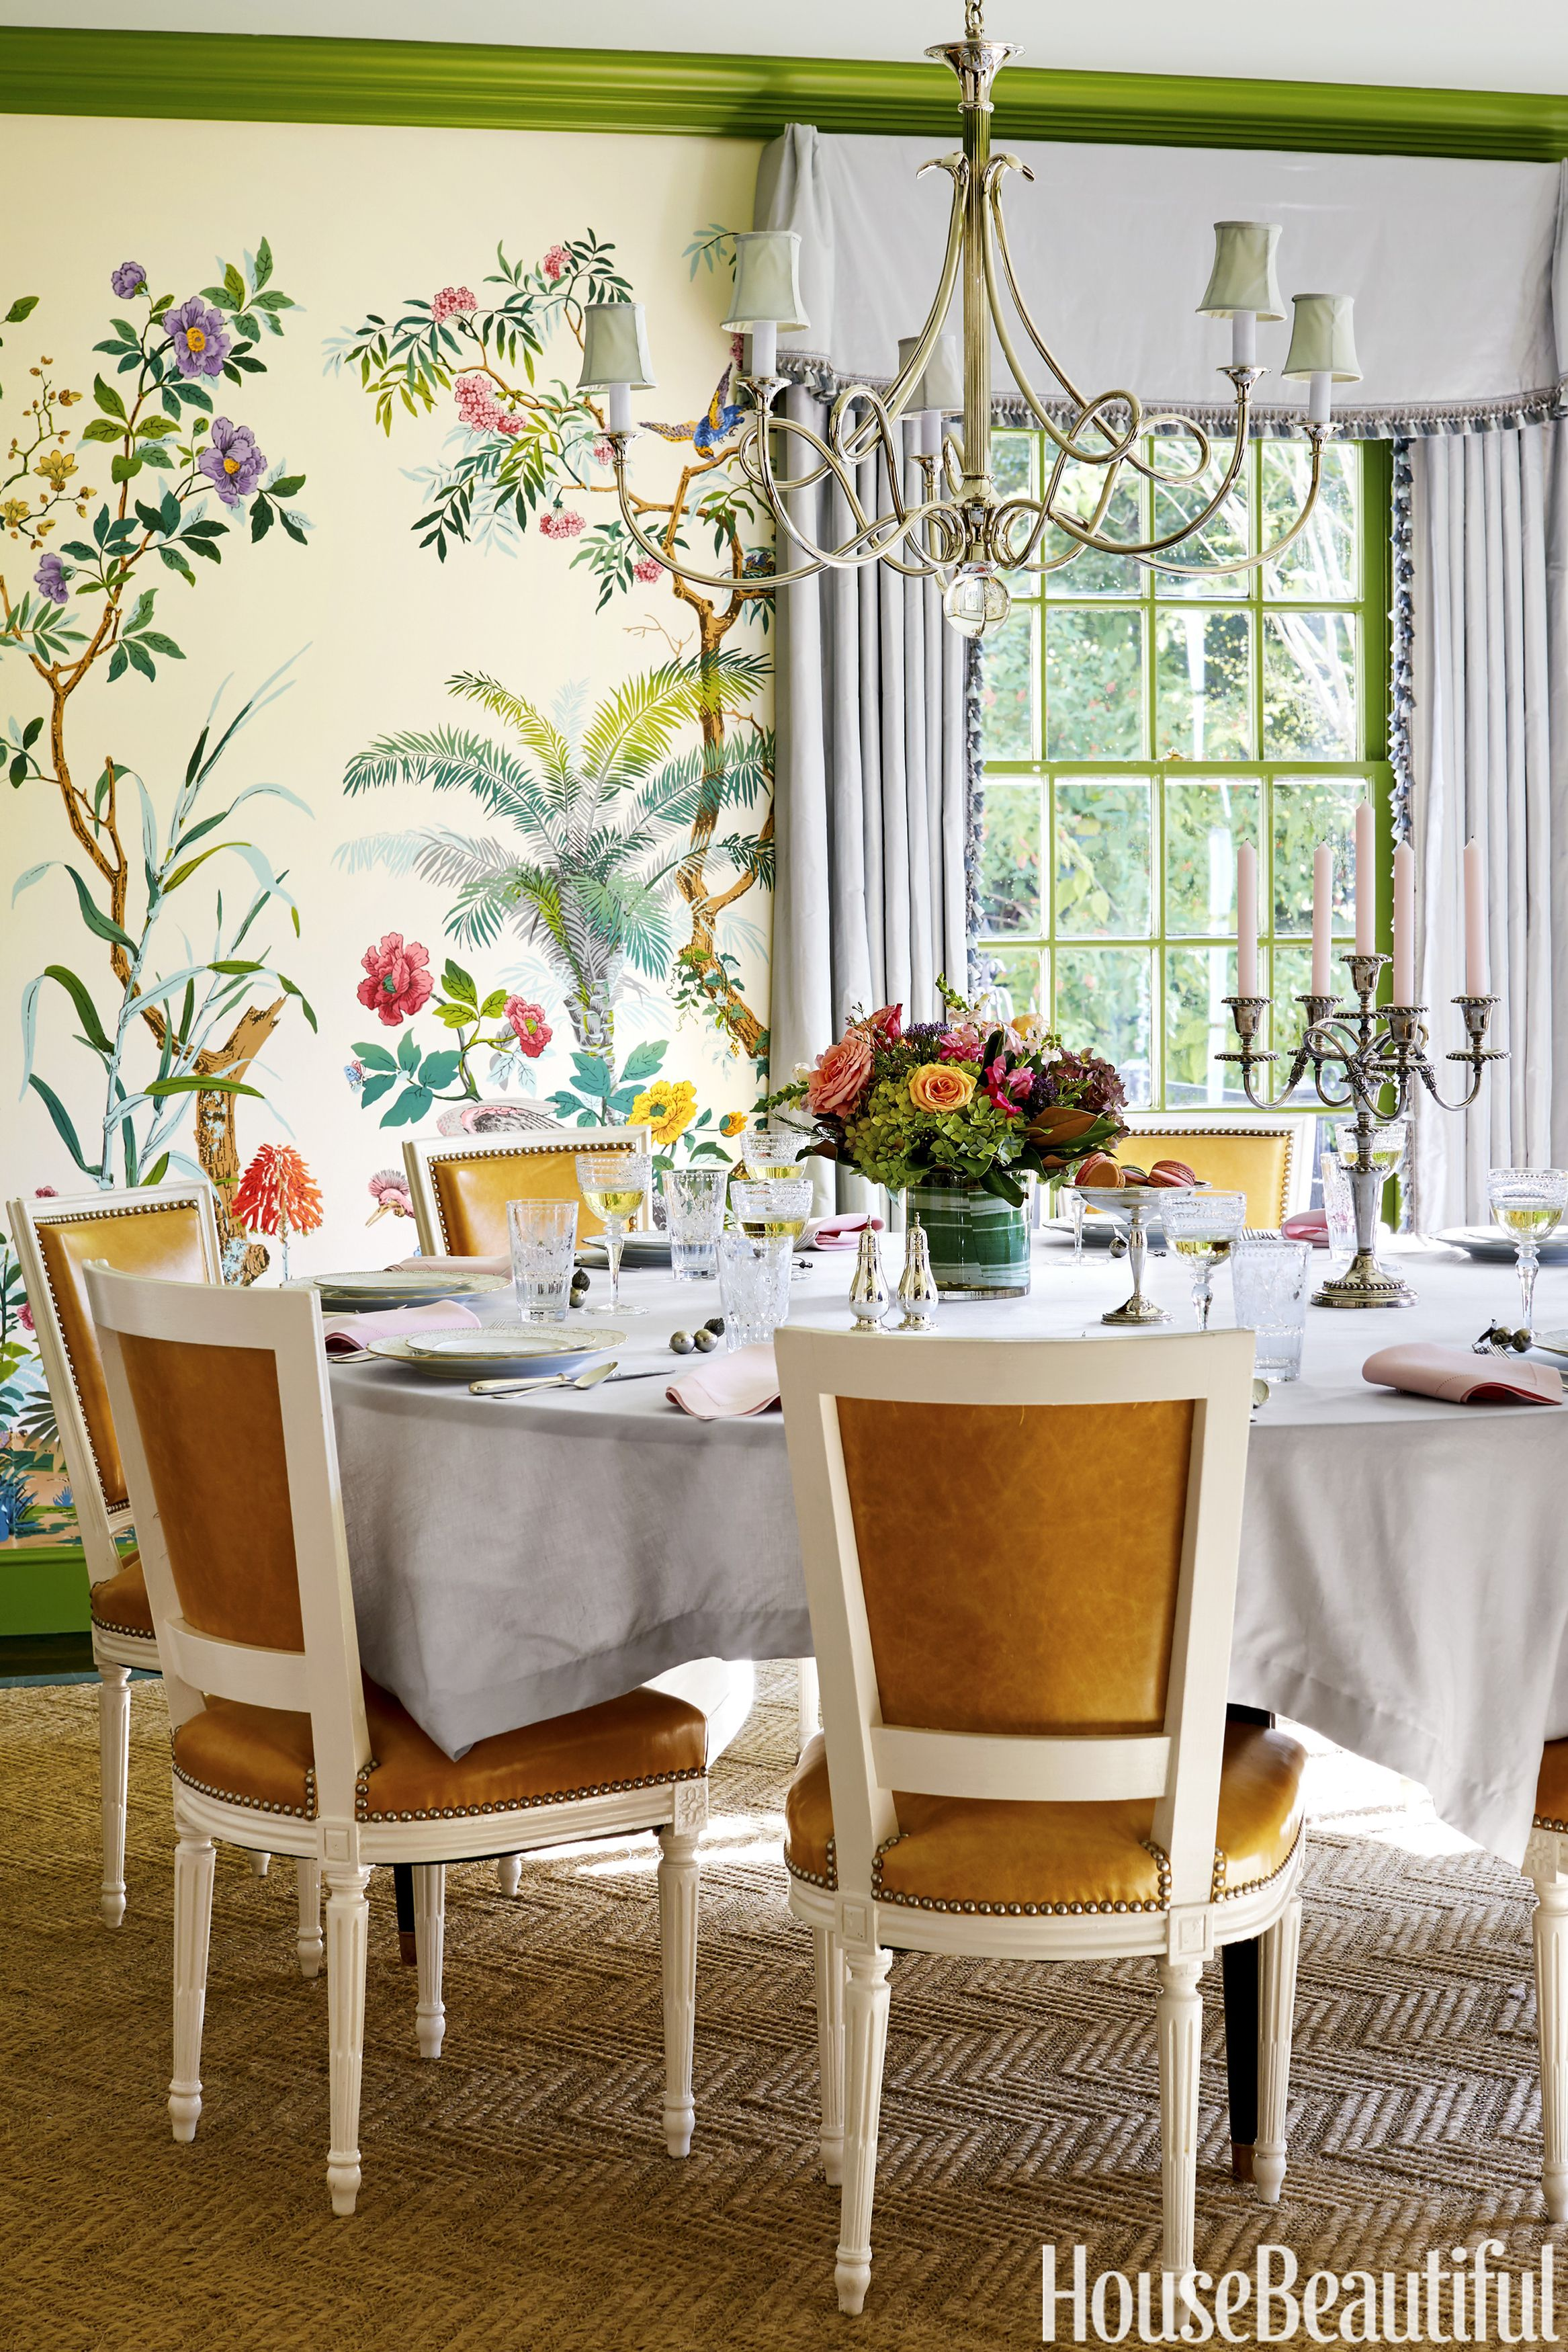 The dining room now bursts with high-octane design from the Zuber wallpaper to. House Beautiful & 50 Best Dining Room Decorating Ideas Furniture Designs and Pictures